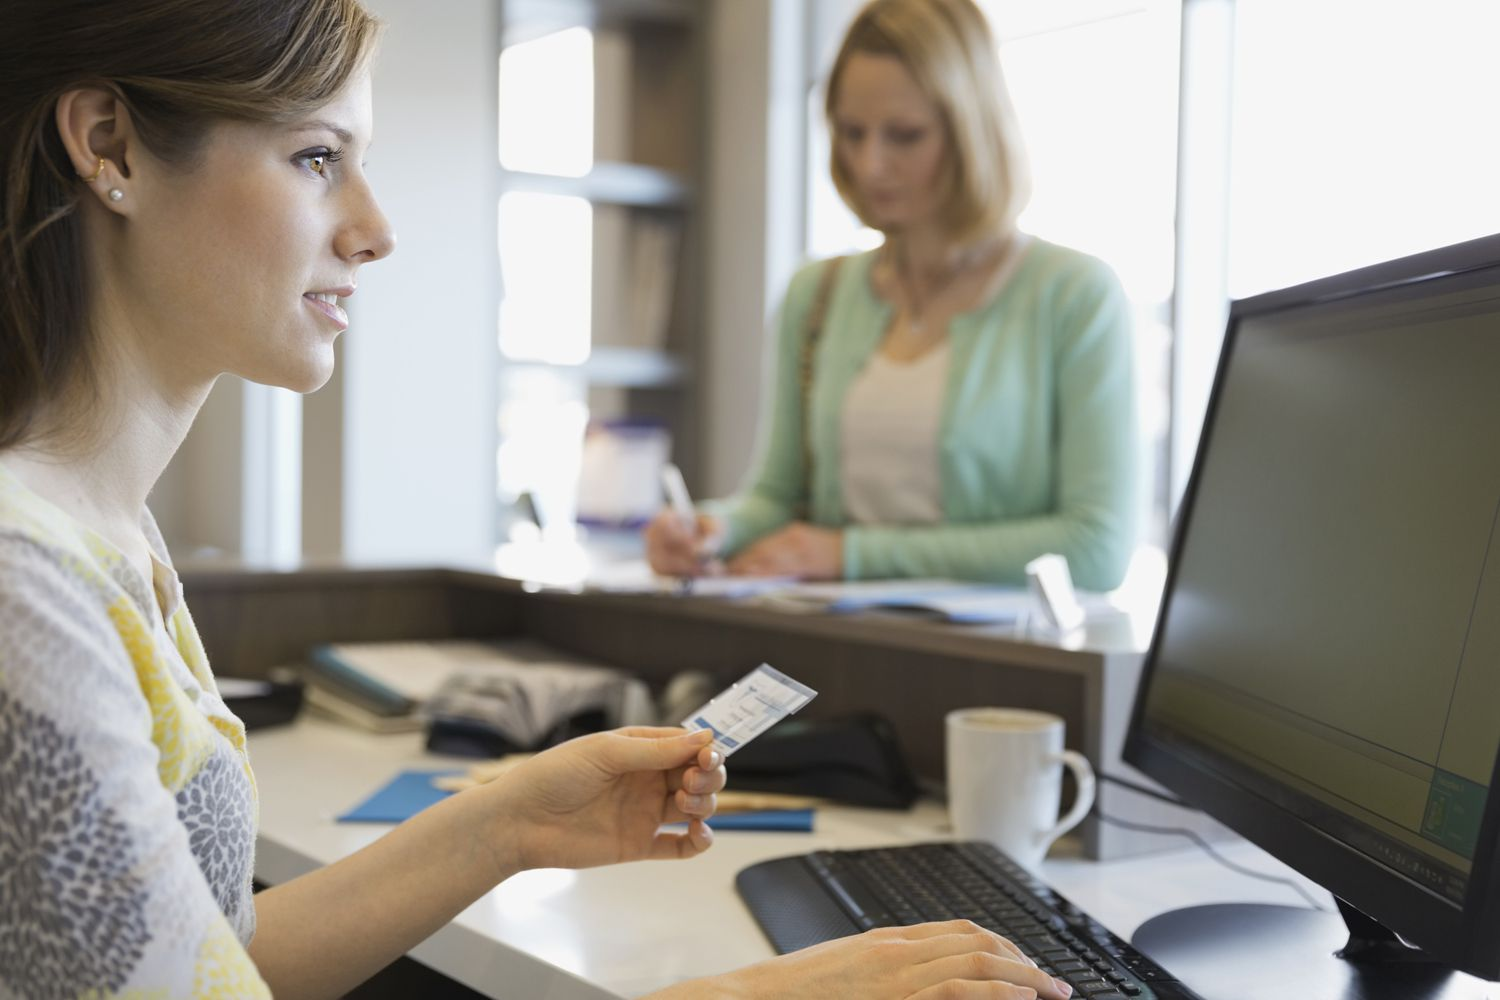 A receptionist examines a patient's insurance information